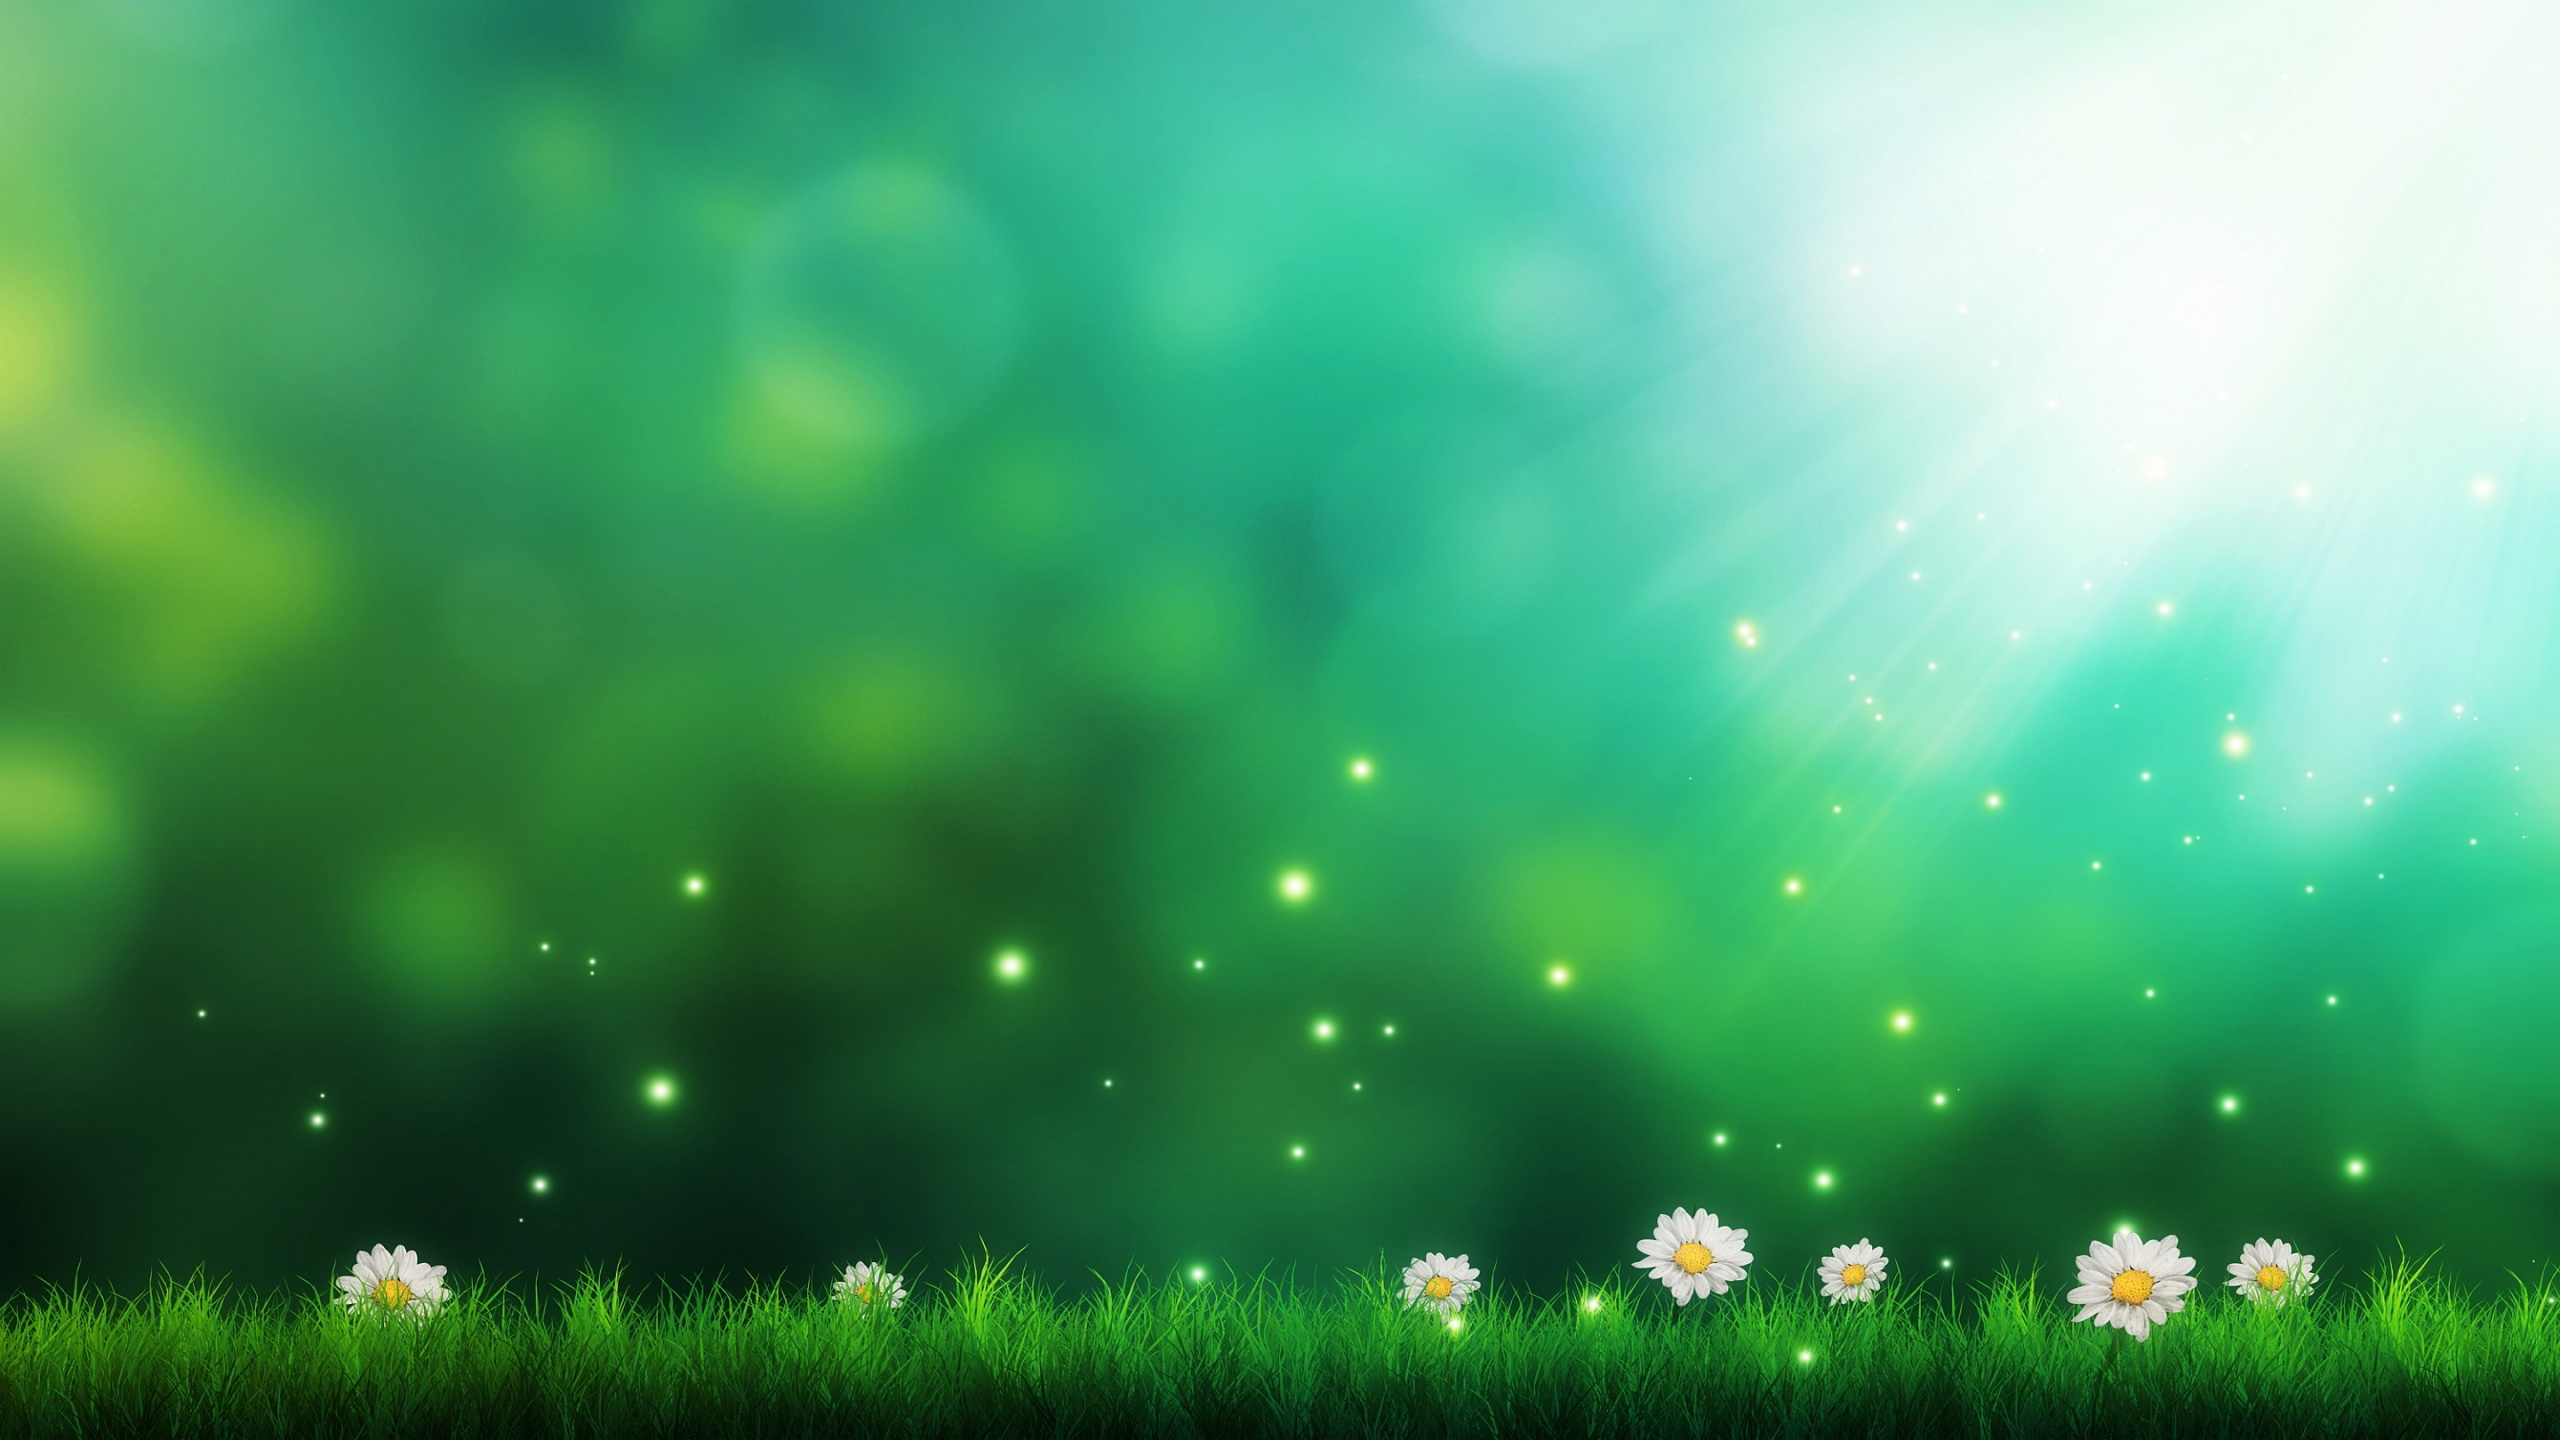 2560x1440 Daisies green background Wallpaper